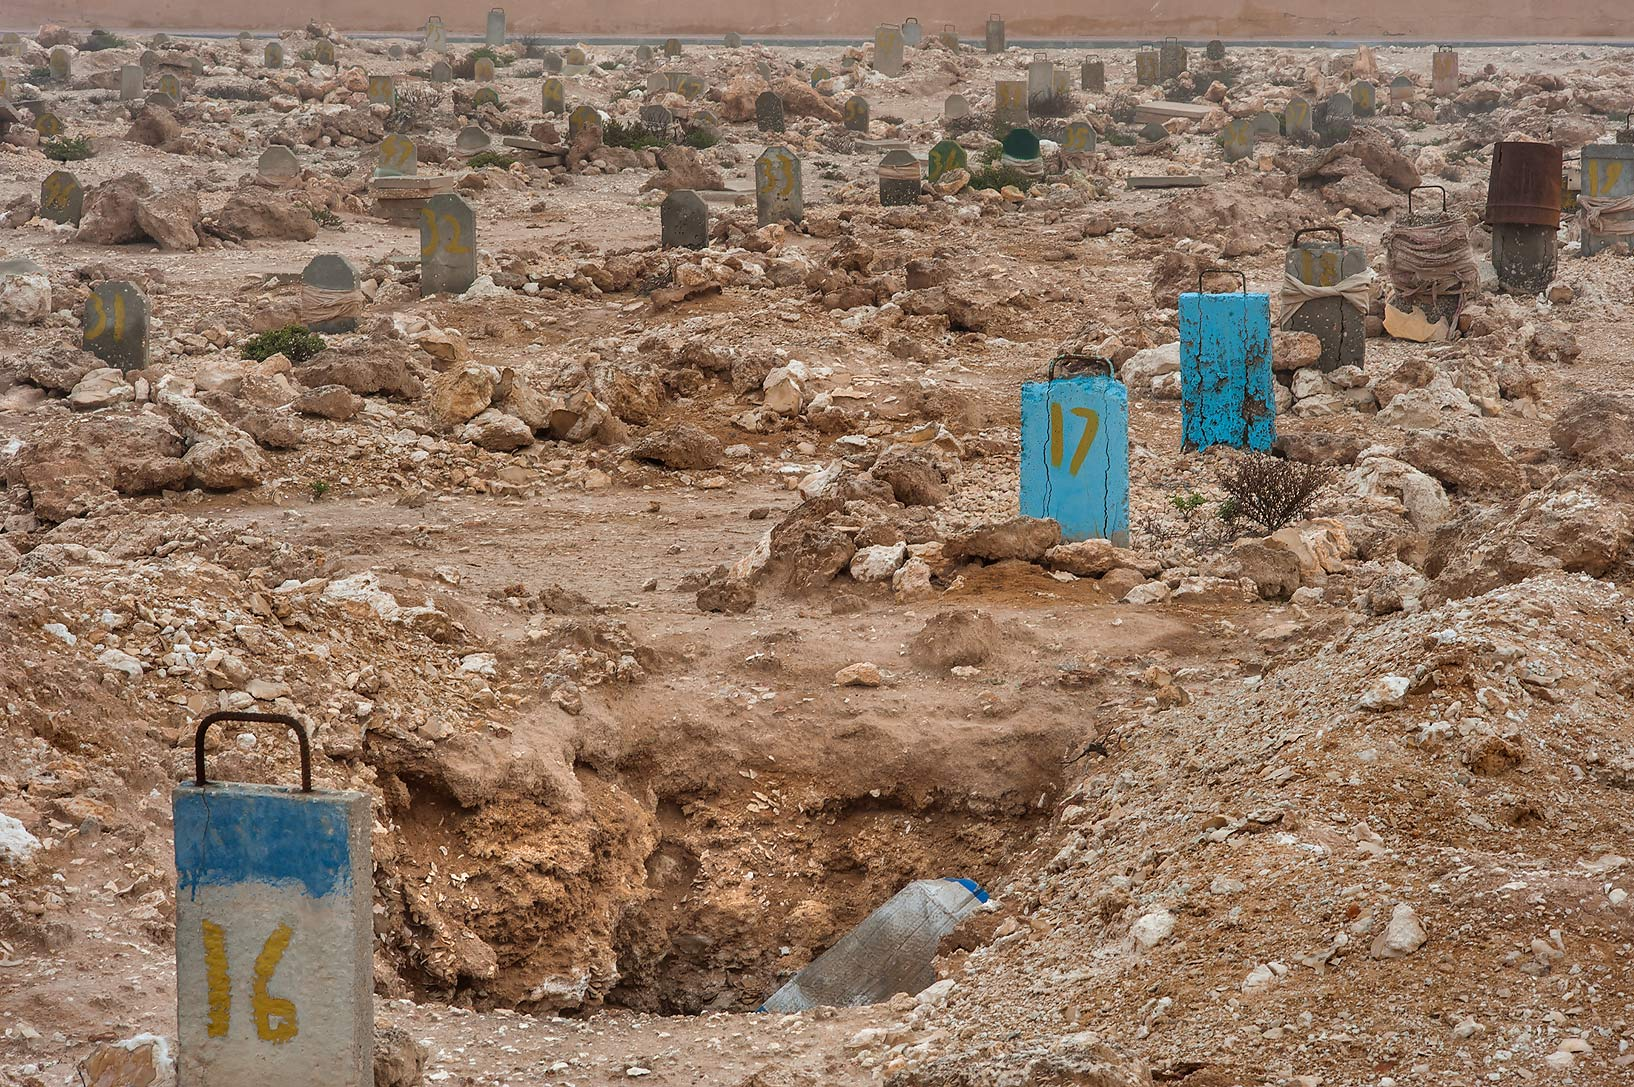 Colorful blue tombstones in Al Khor Cemetery. North from Al Khor, Qatar